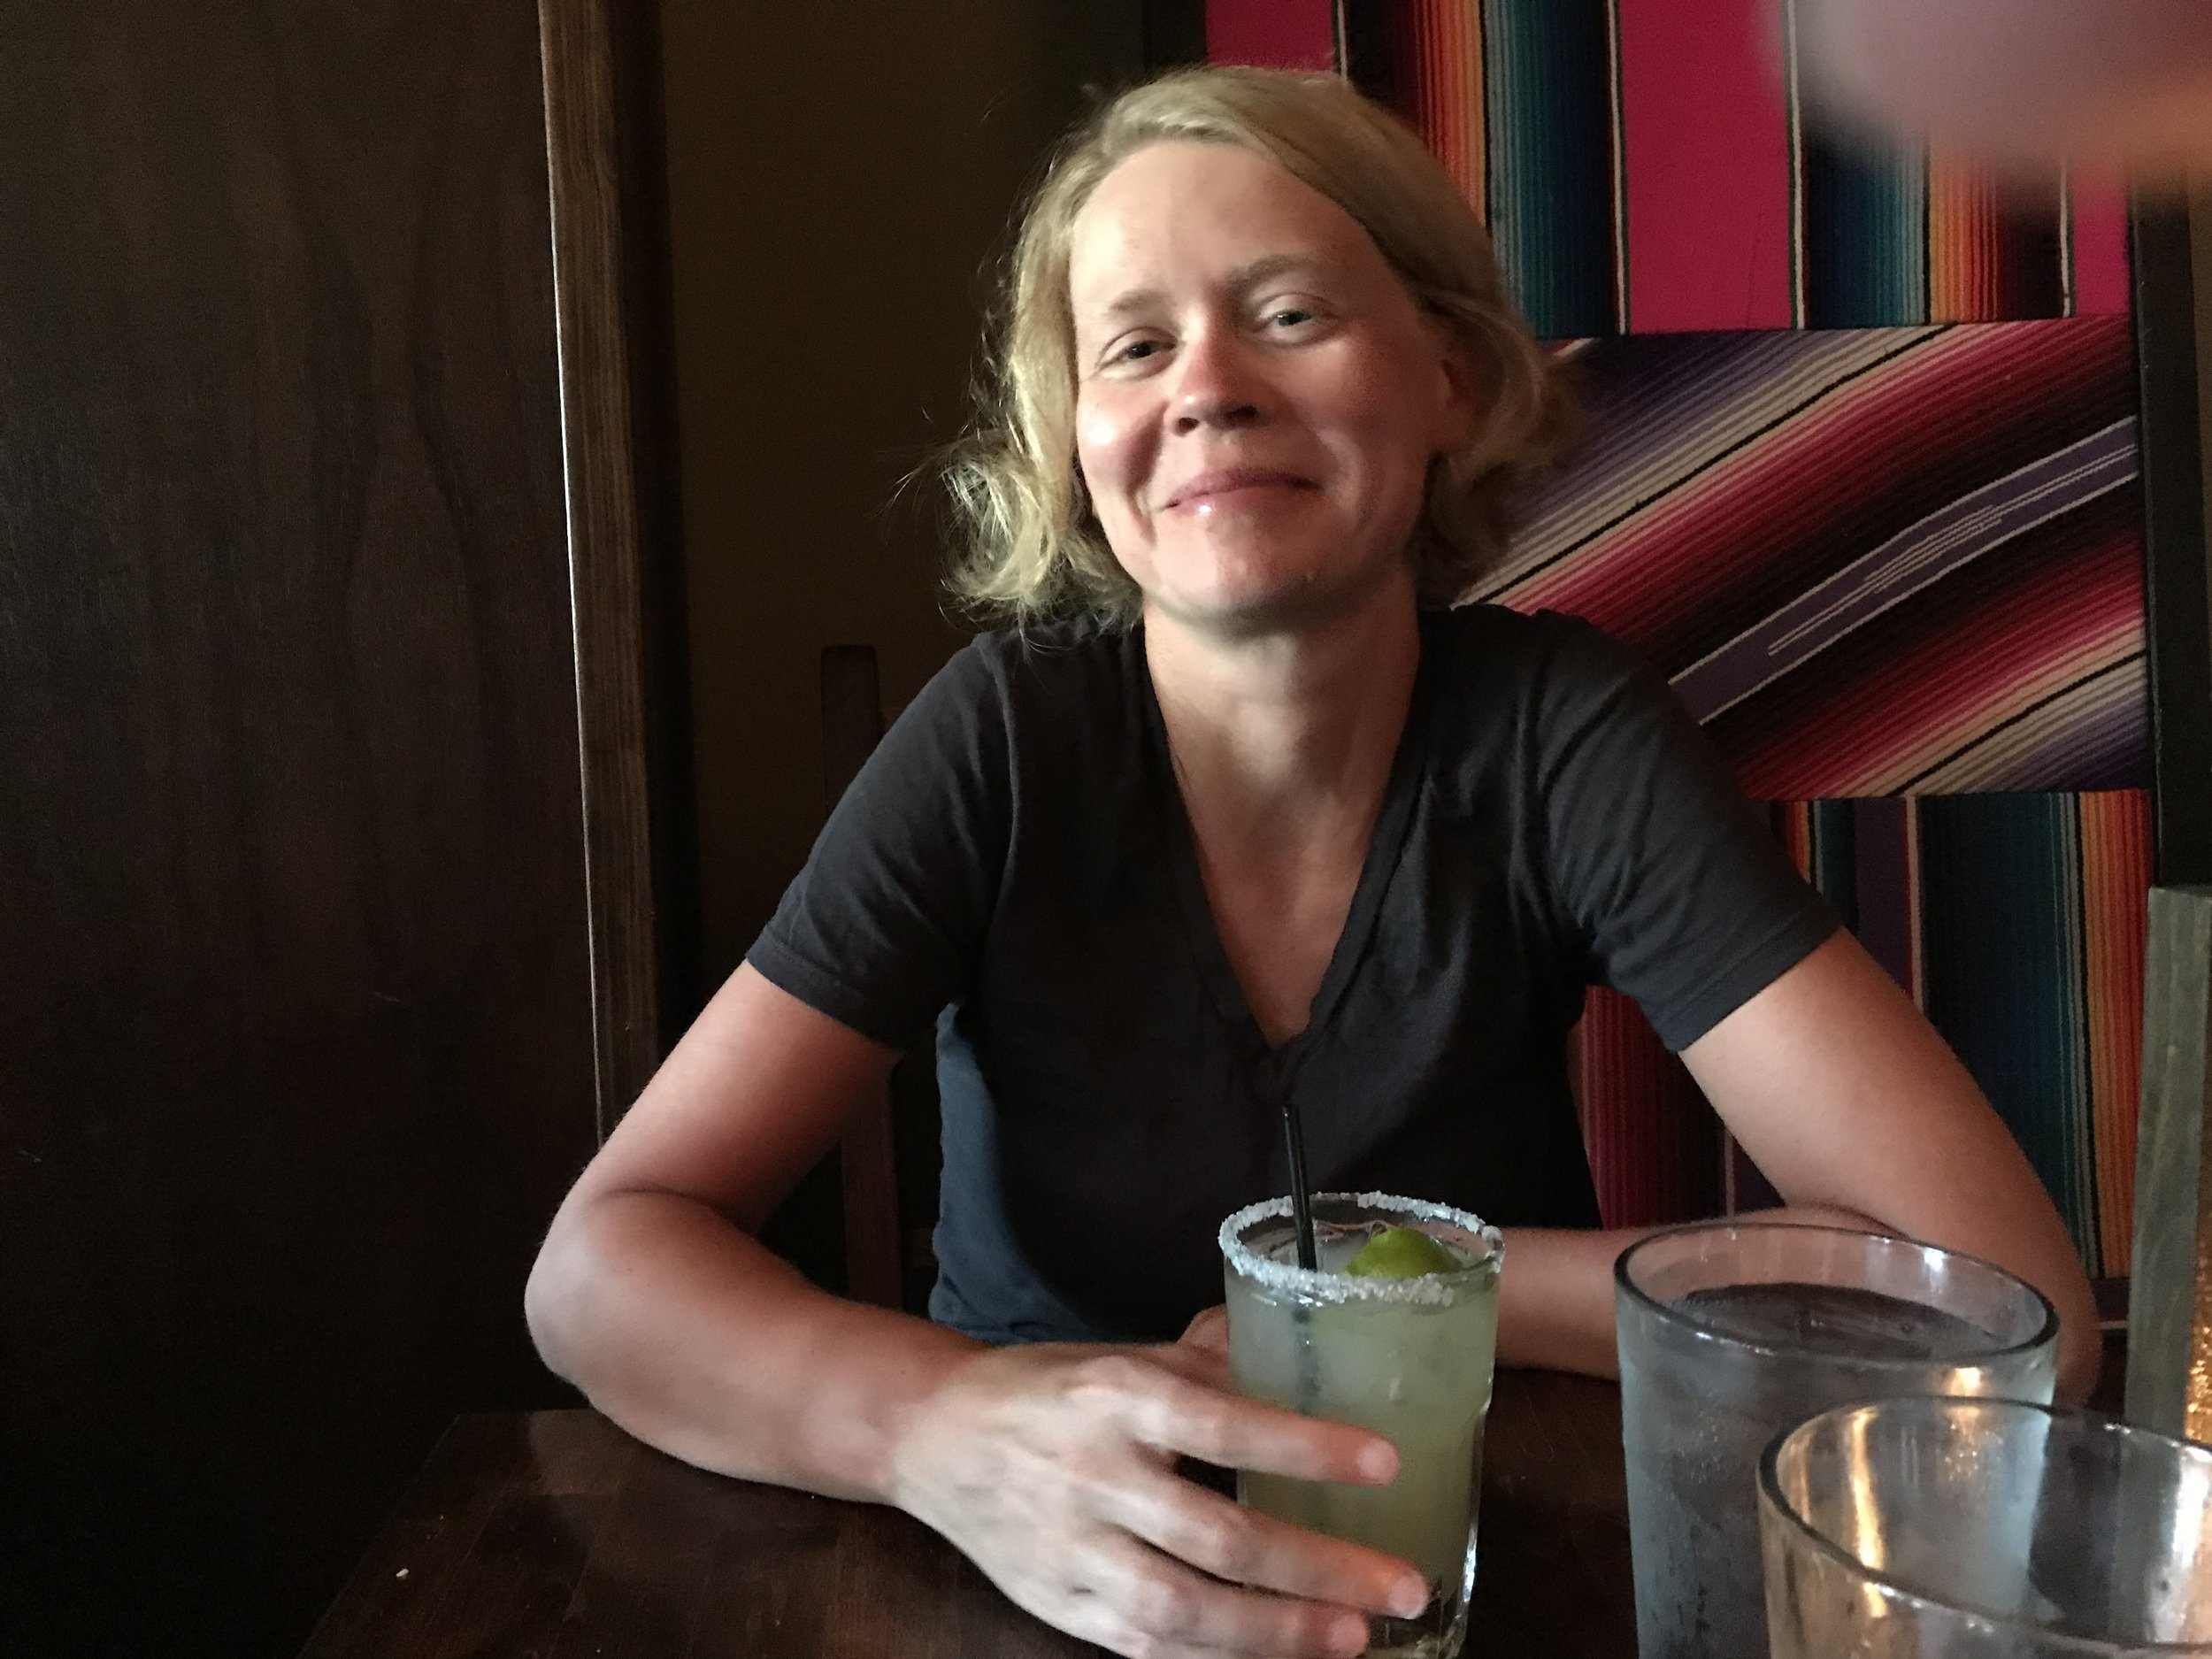 Celebrating Friday night with one well-earned margarita. Not pictured: how we promptly fell asleep at 8:30pm that night.